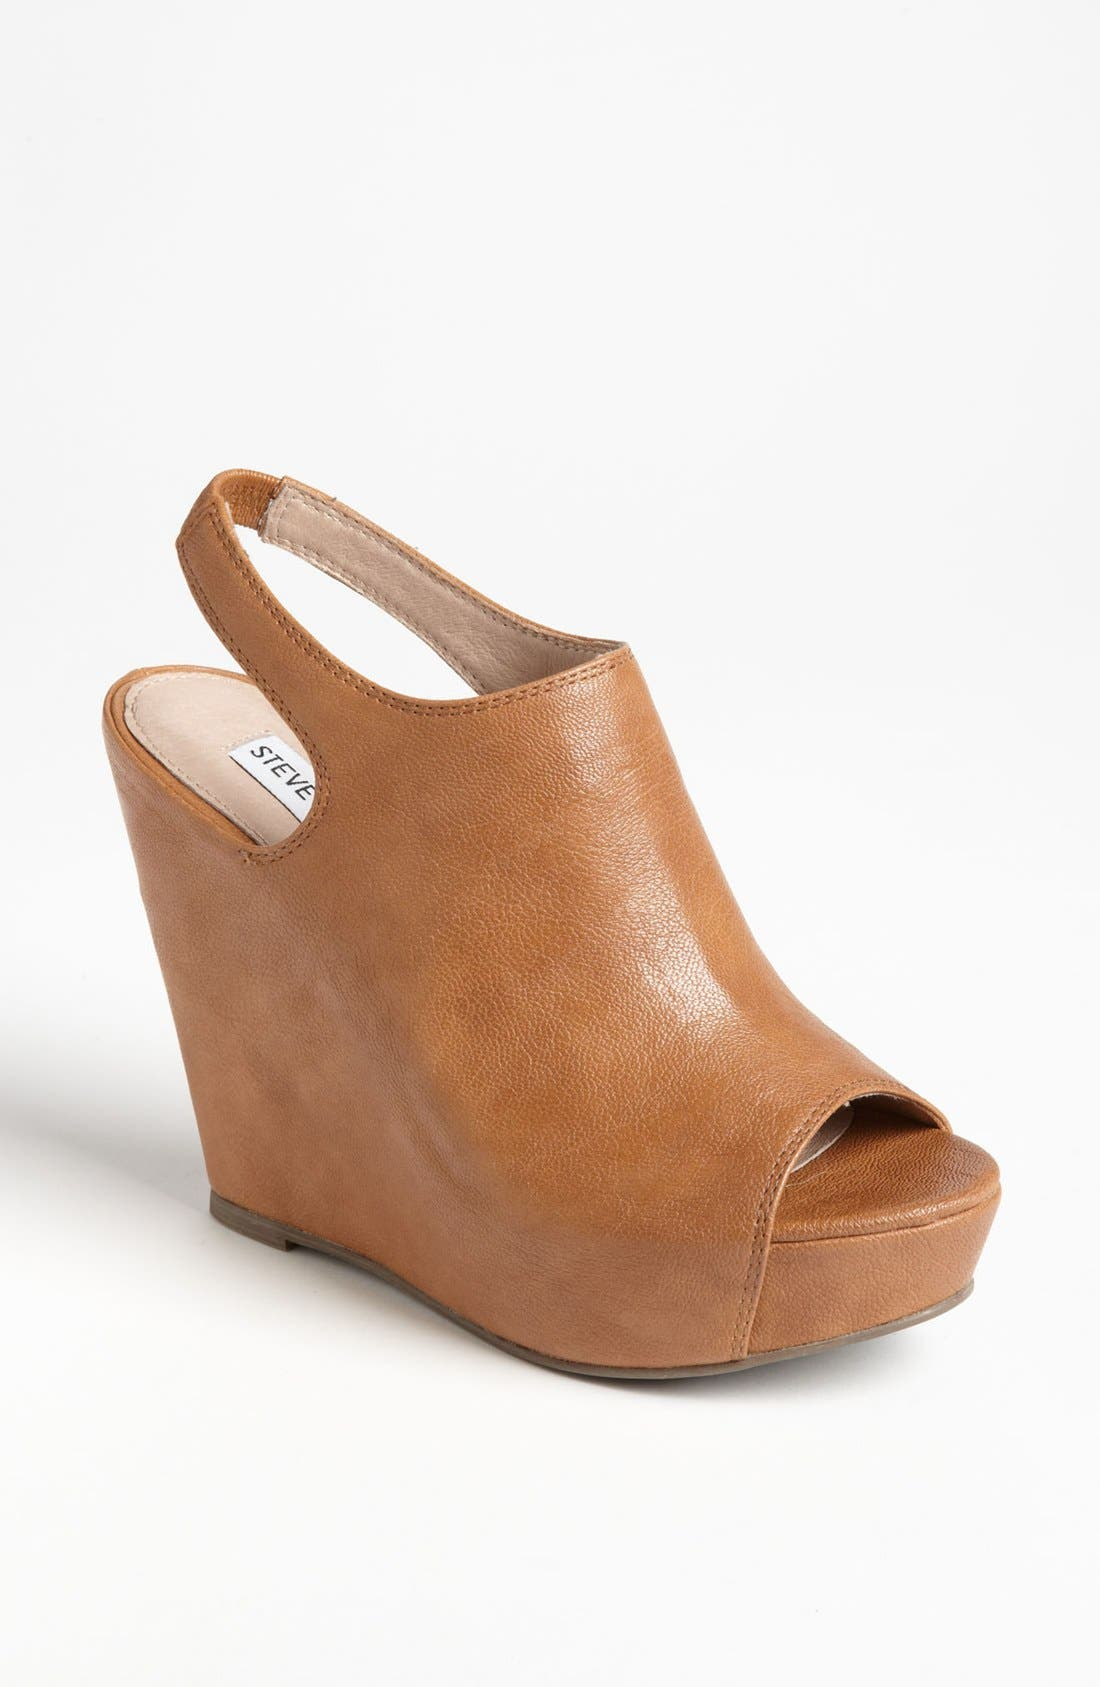 Alternate Image 1 Selected - Steve Madden 'Barcley' Wedge